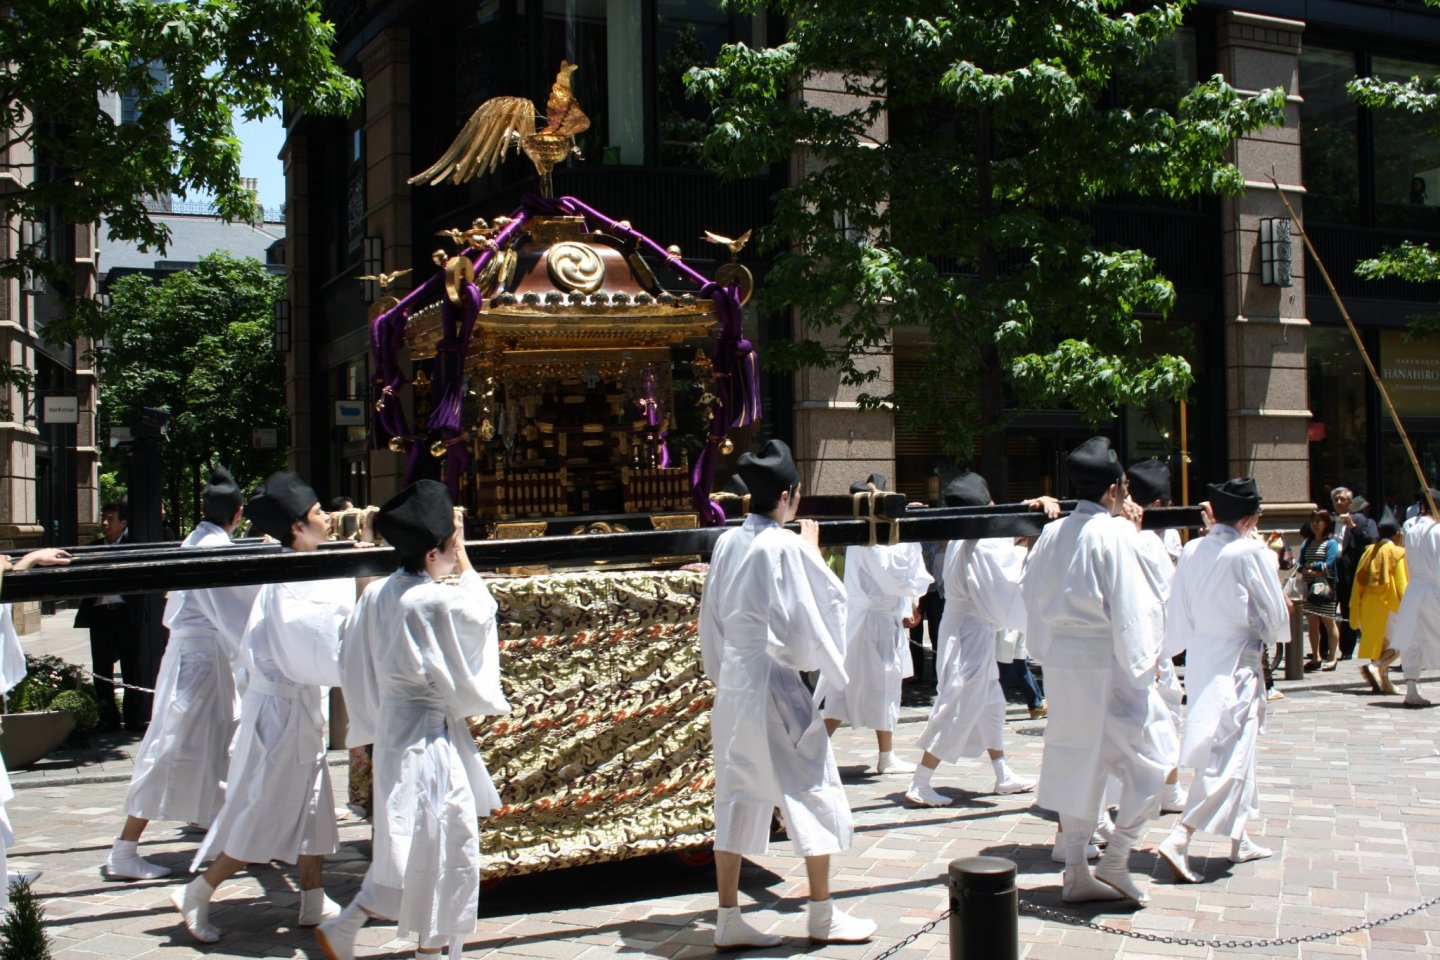 One of the 3 portable shrines in the procession